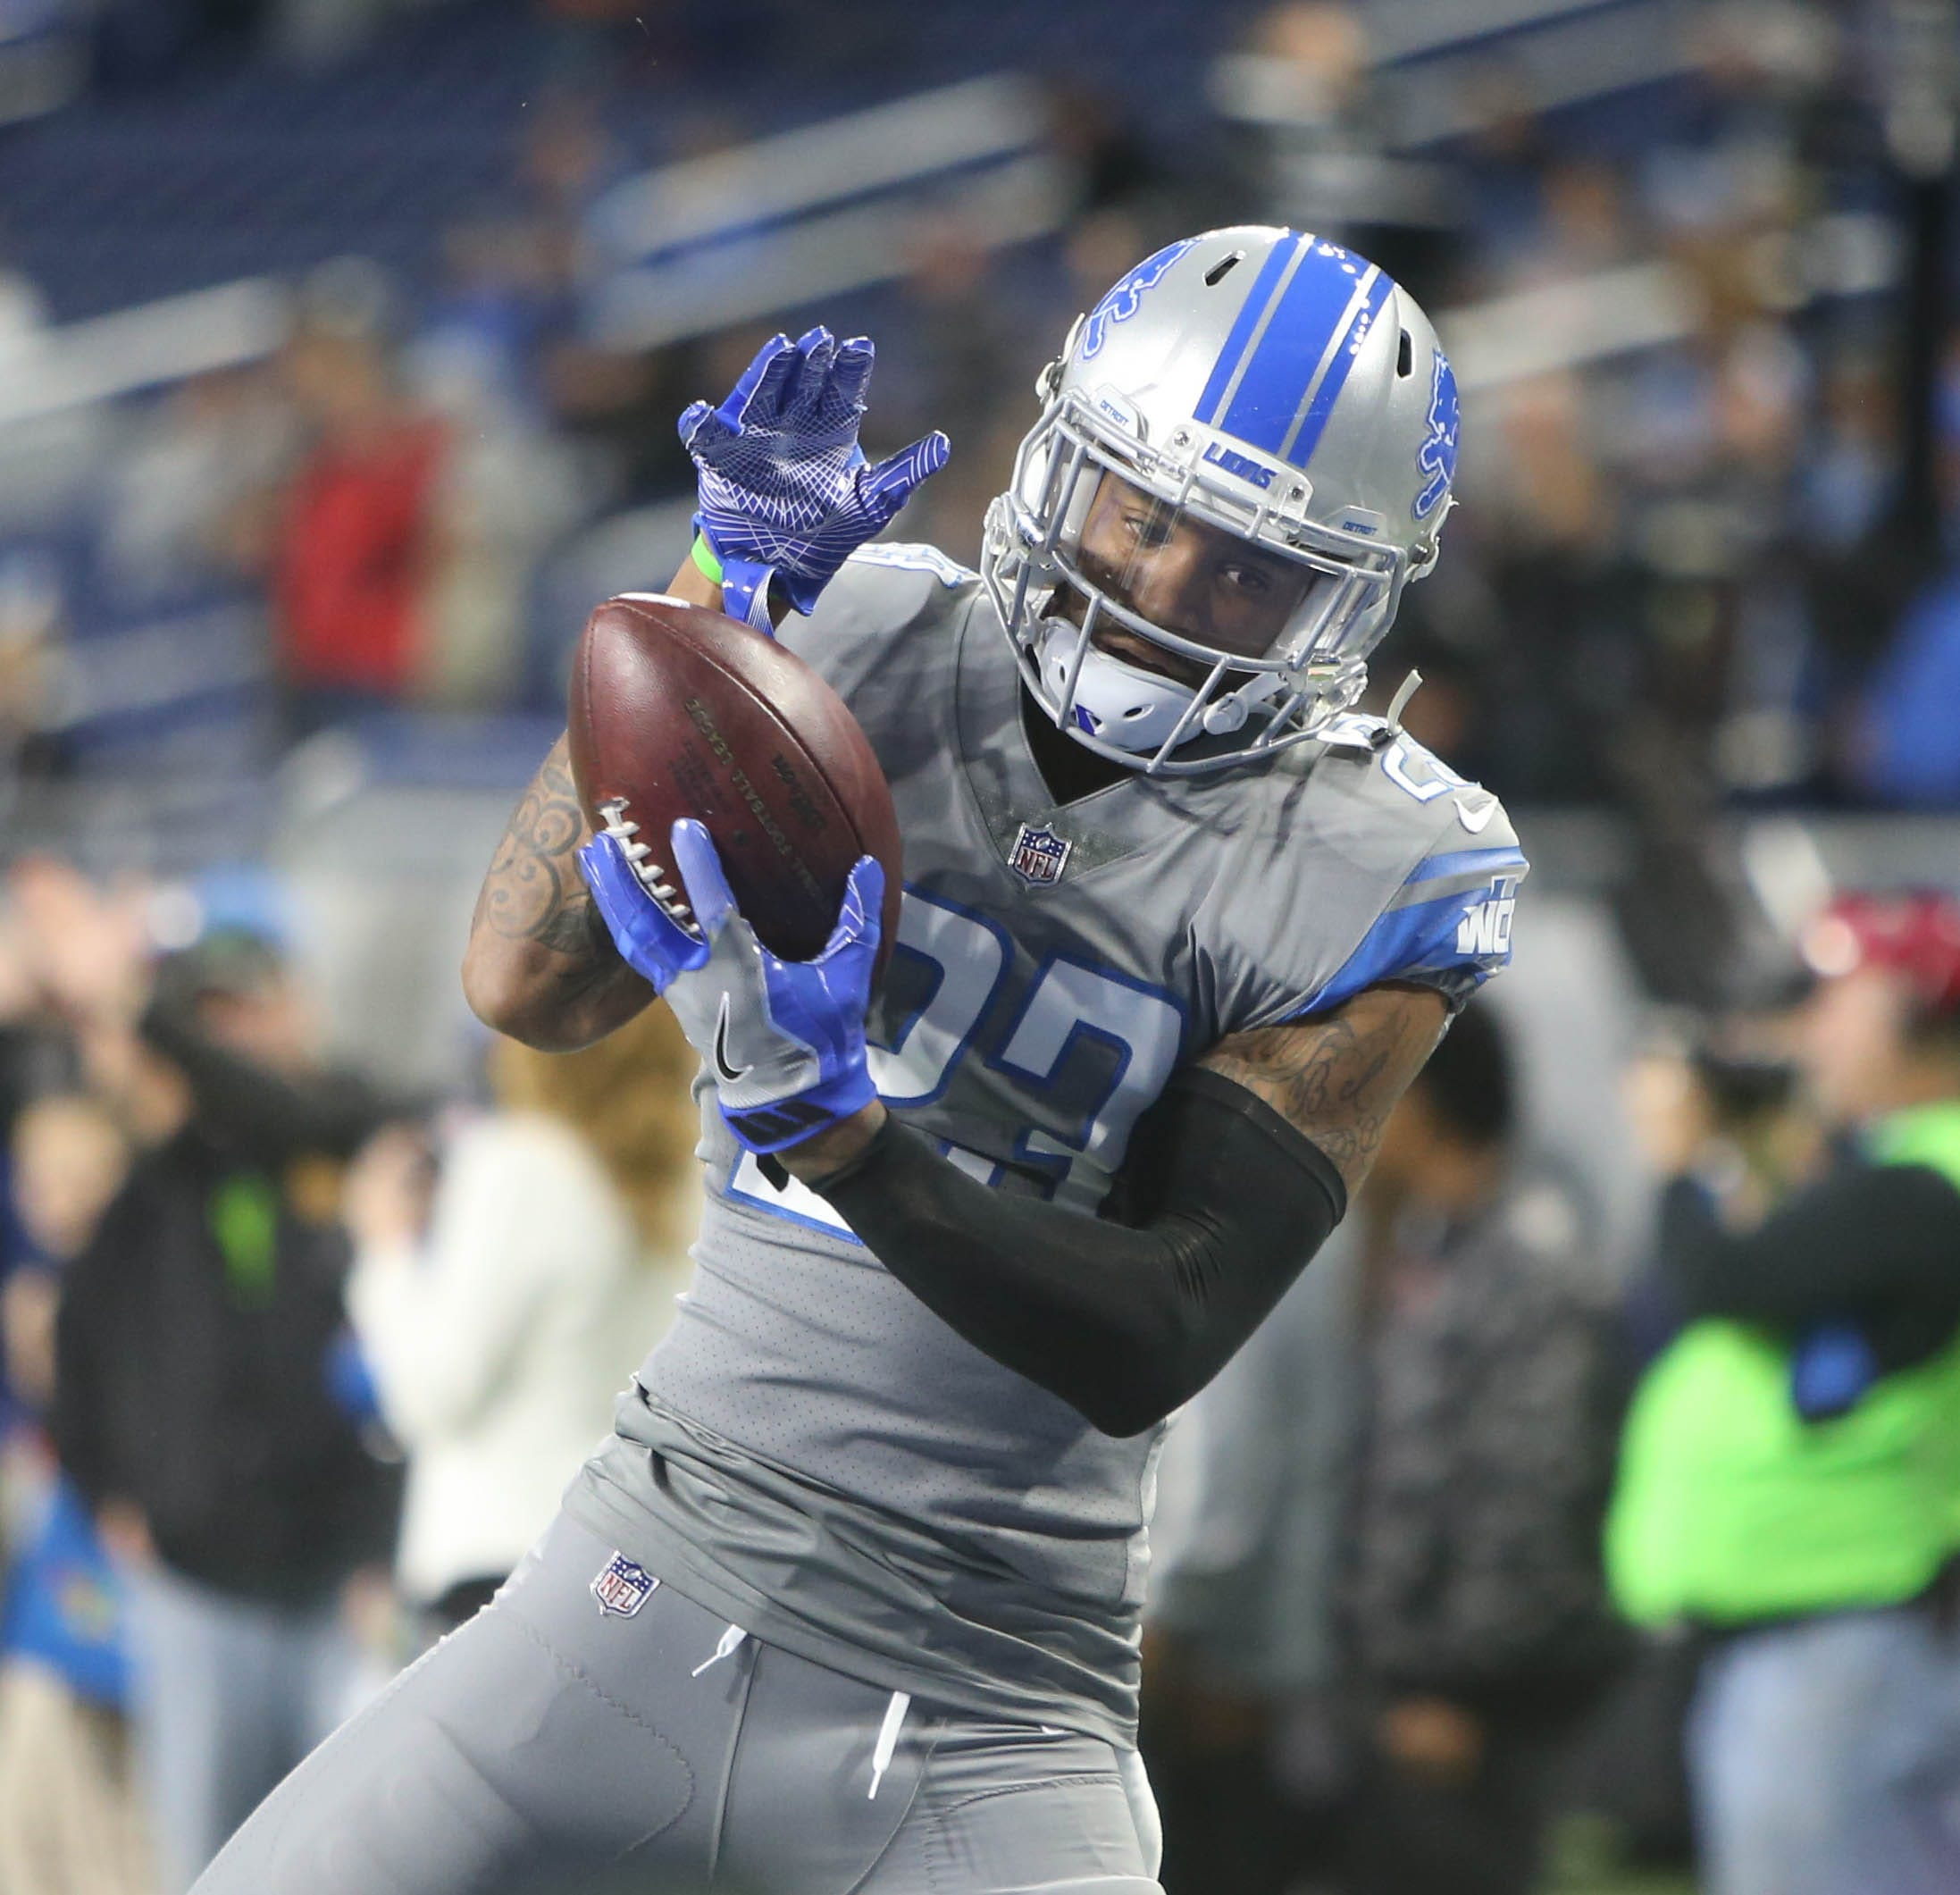 http   www.freep.com picture-gallery sports nfl lions 2014 08 28 barry ... 77c0bfe44